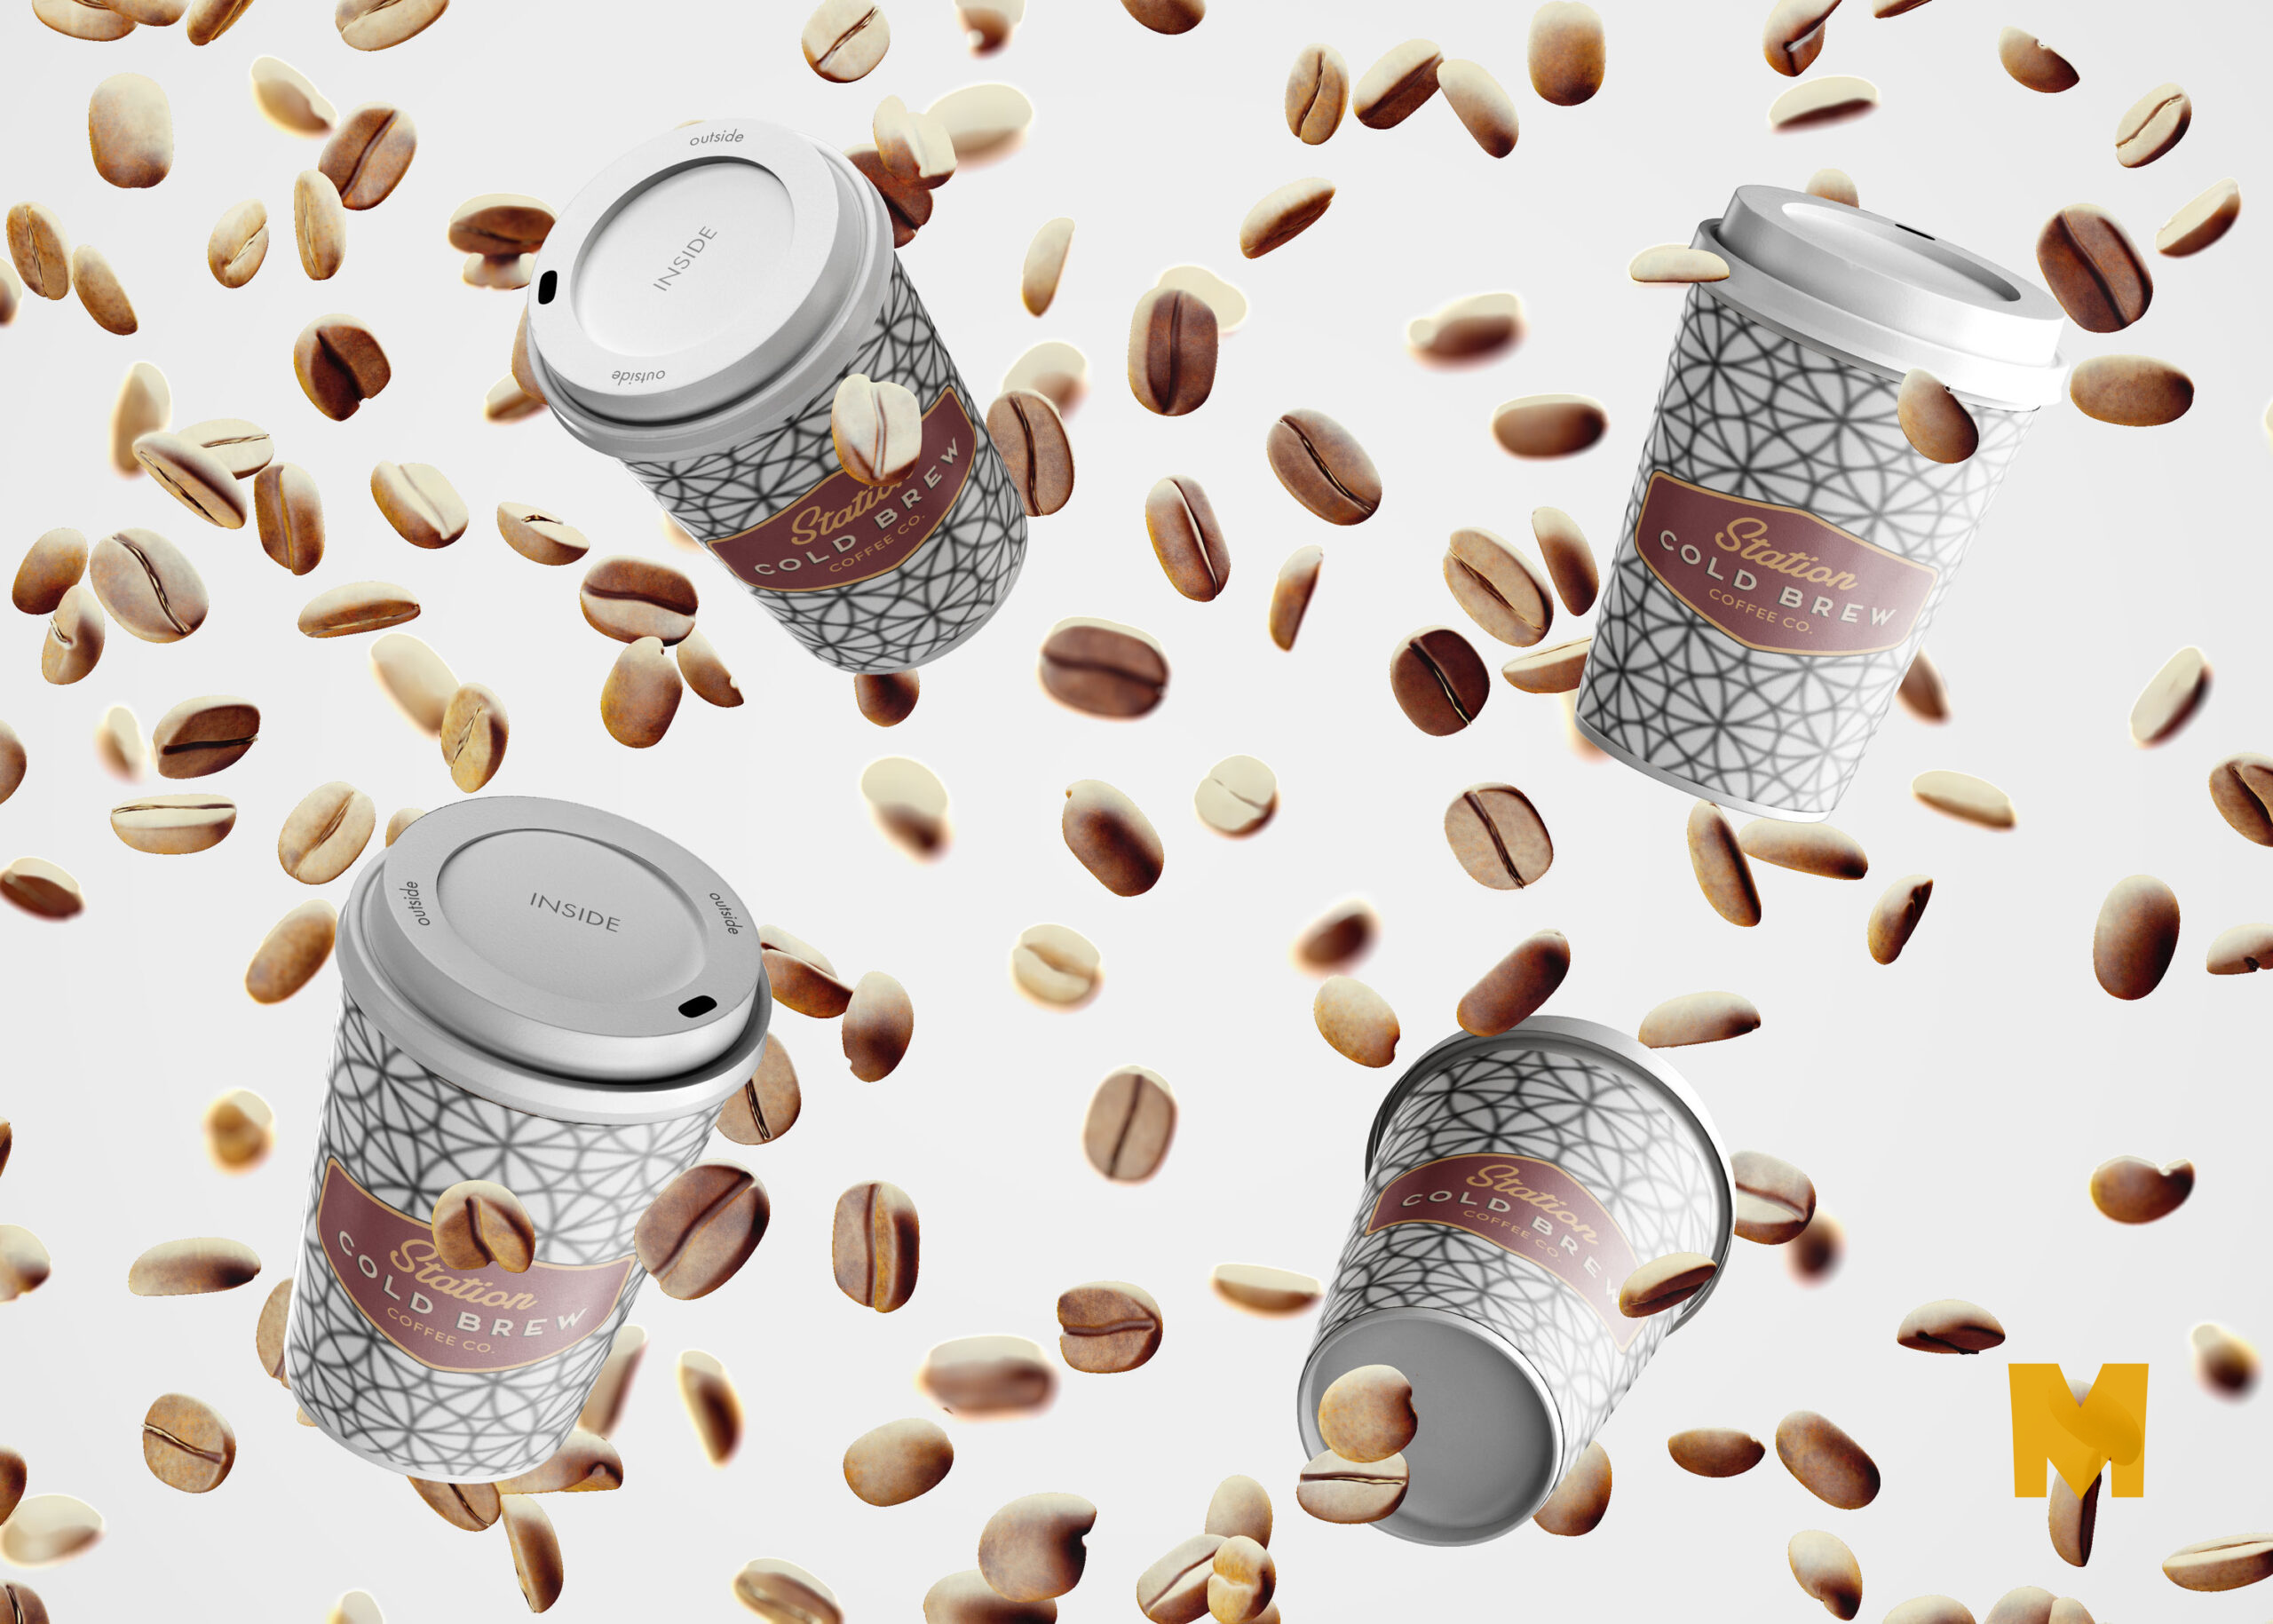 Free Cold Coffee Cans Packaging Mockup